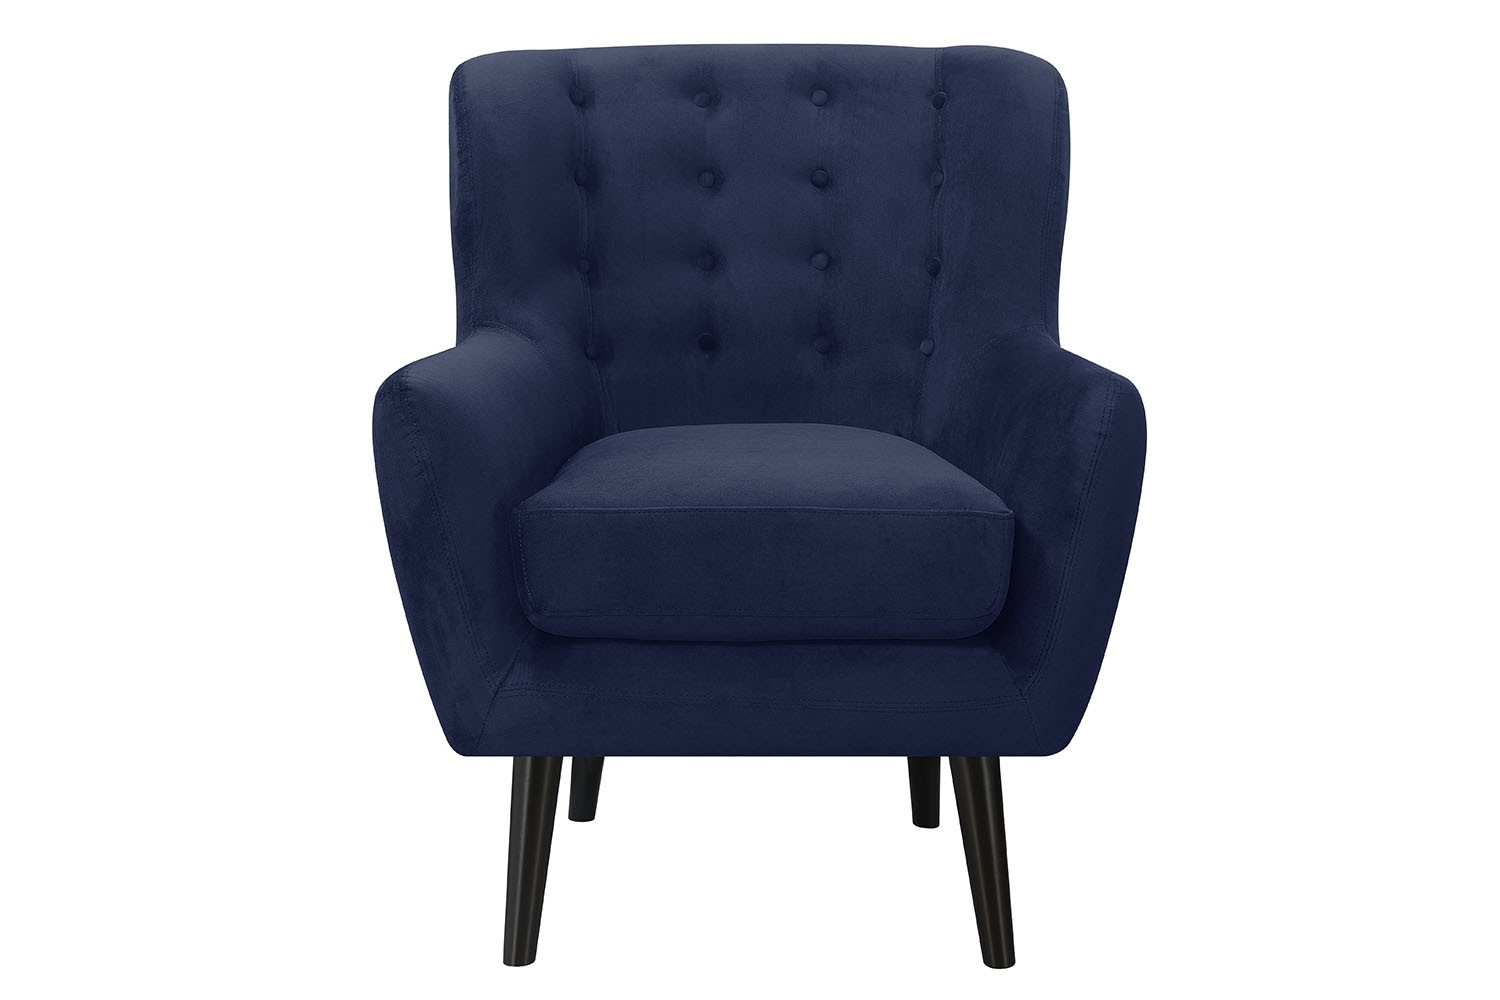 Navy Accent Chair Lucy Accent Chair In Navy Mor Furniture For Less